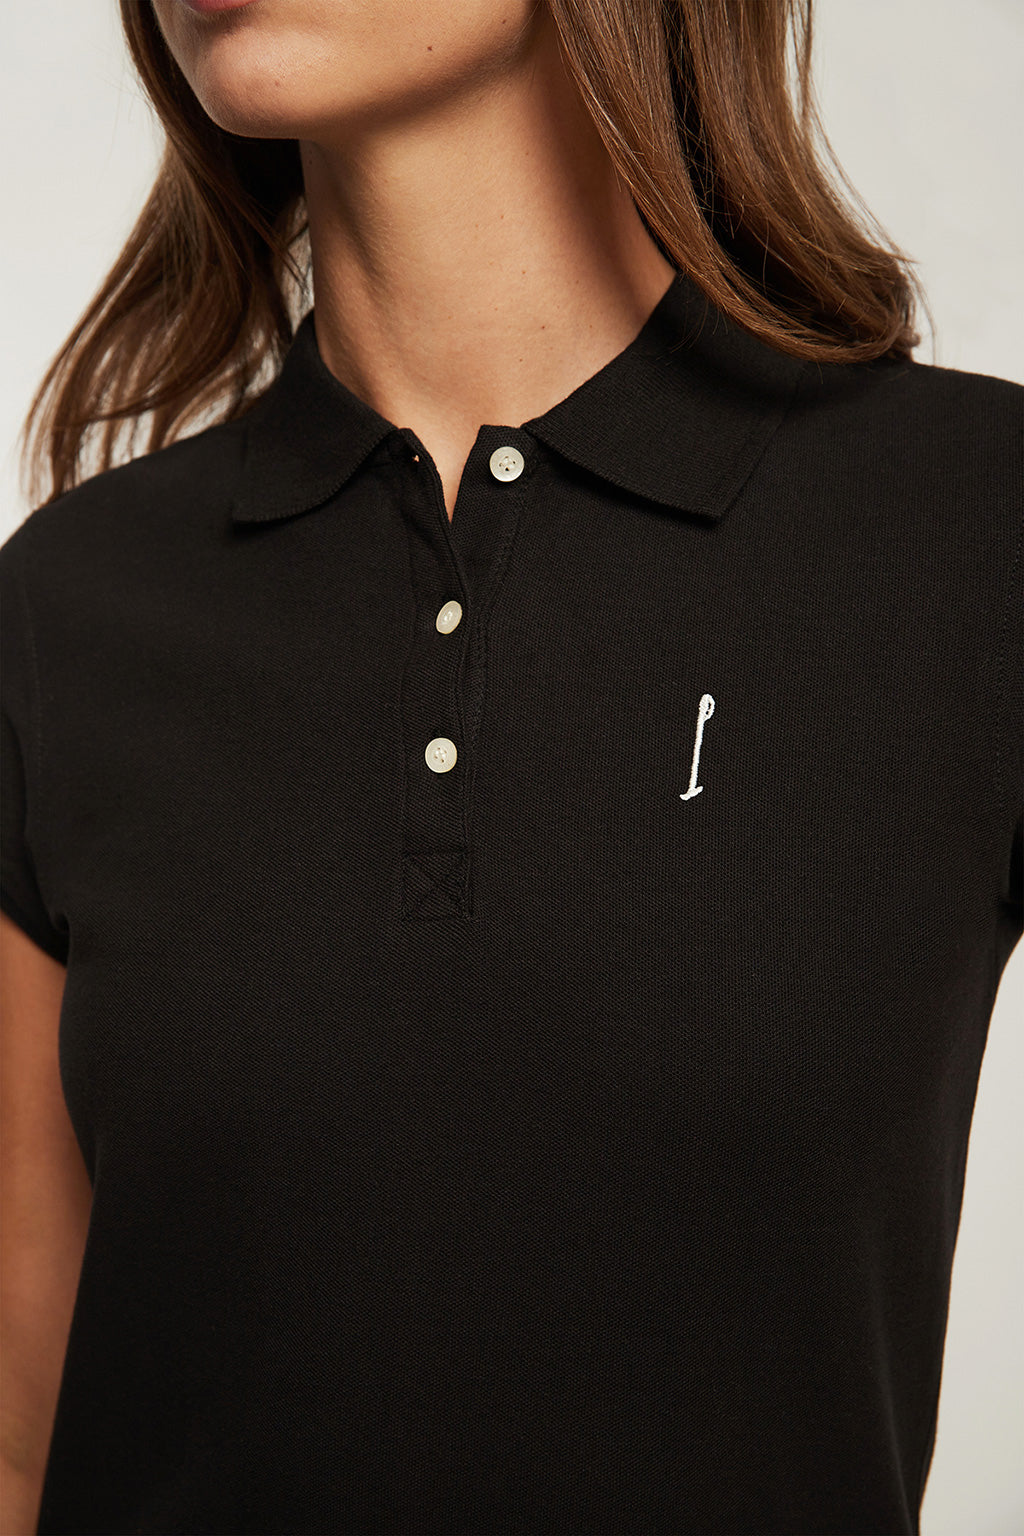 Custom fit black polo shirt with embroidery